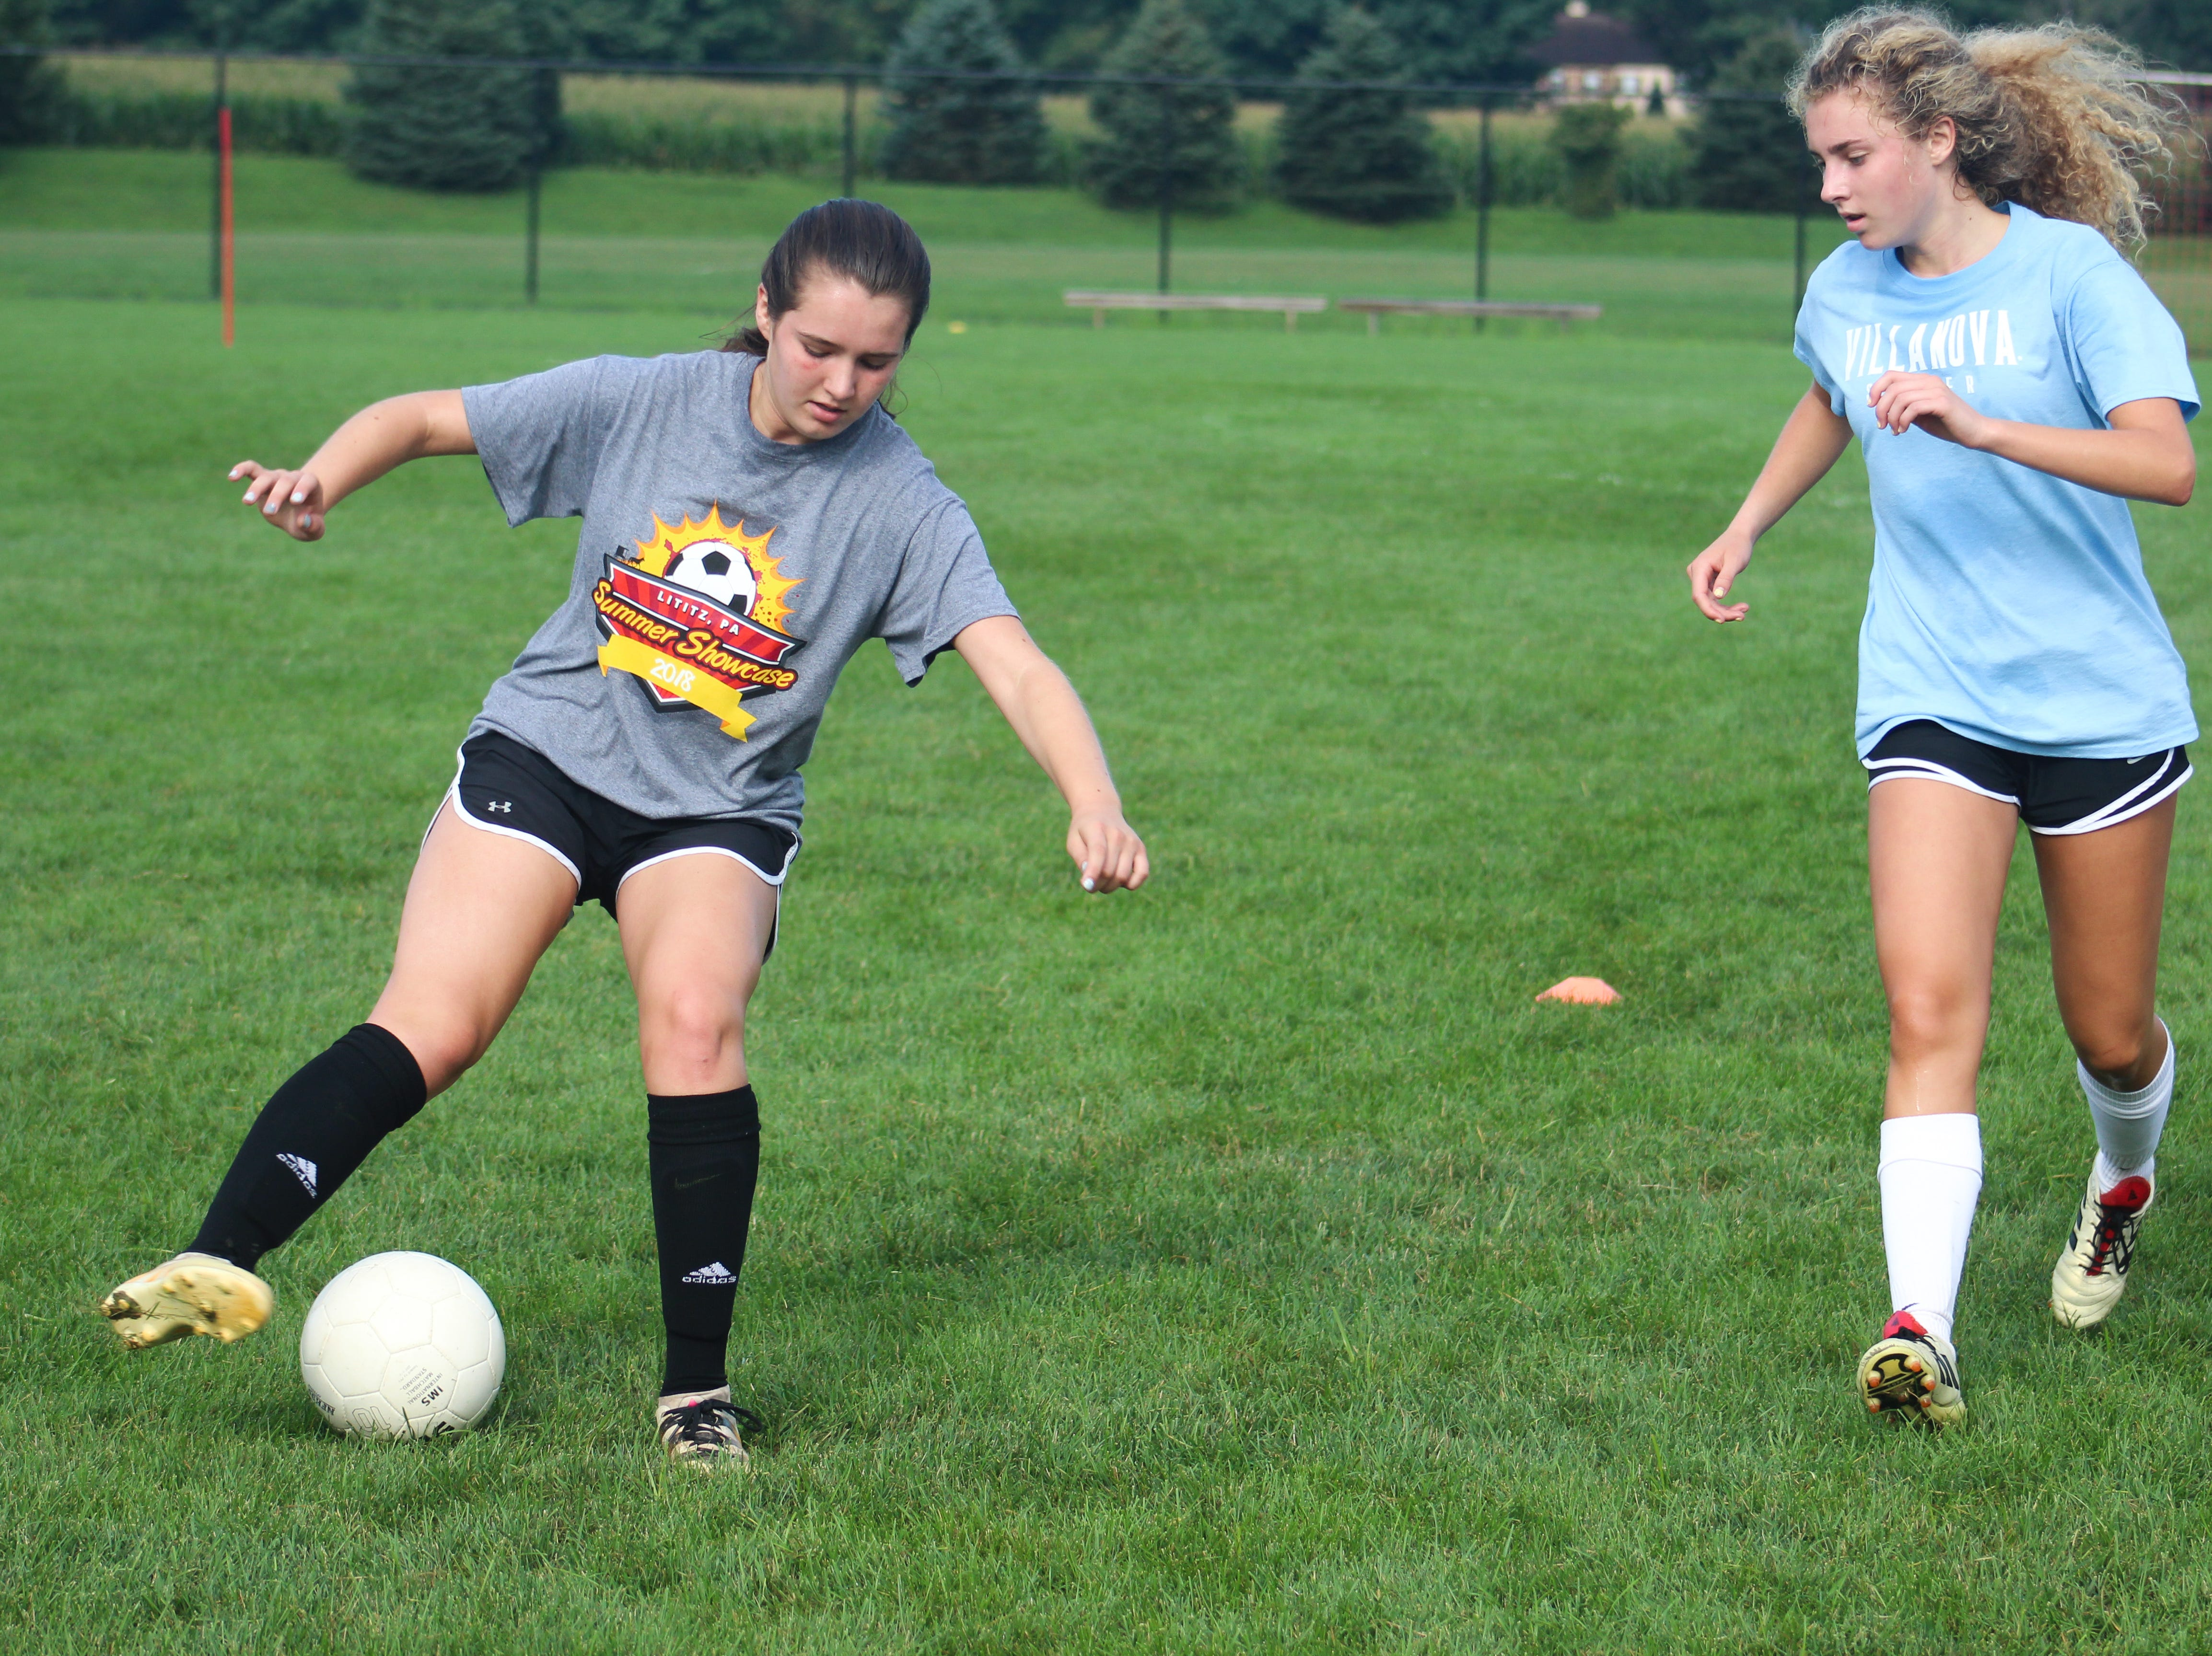 Central York High School girls' soccer players run through a drill on August 13, 2018.